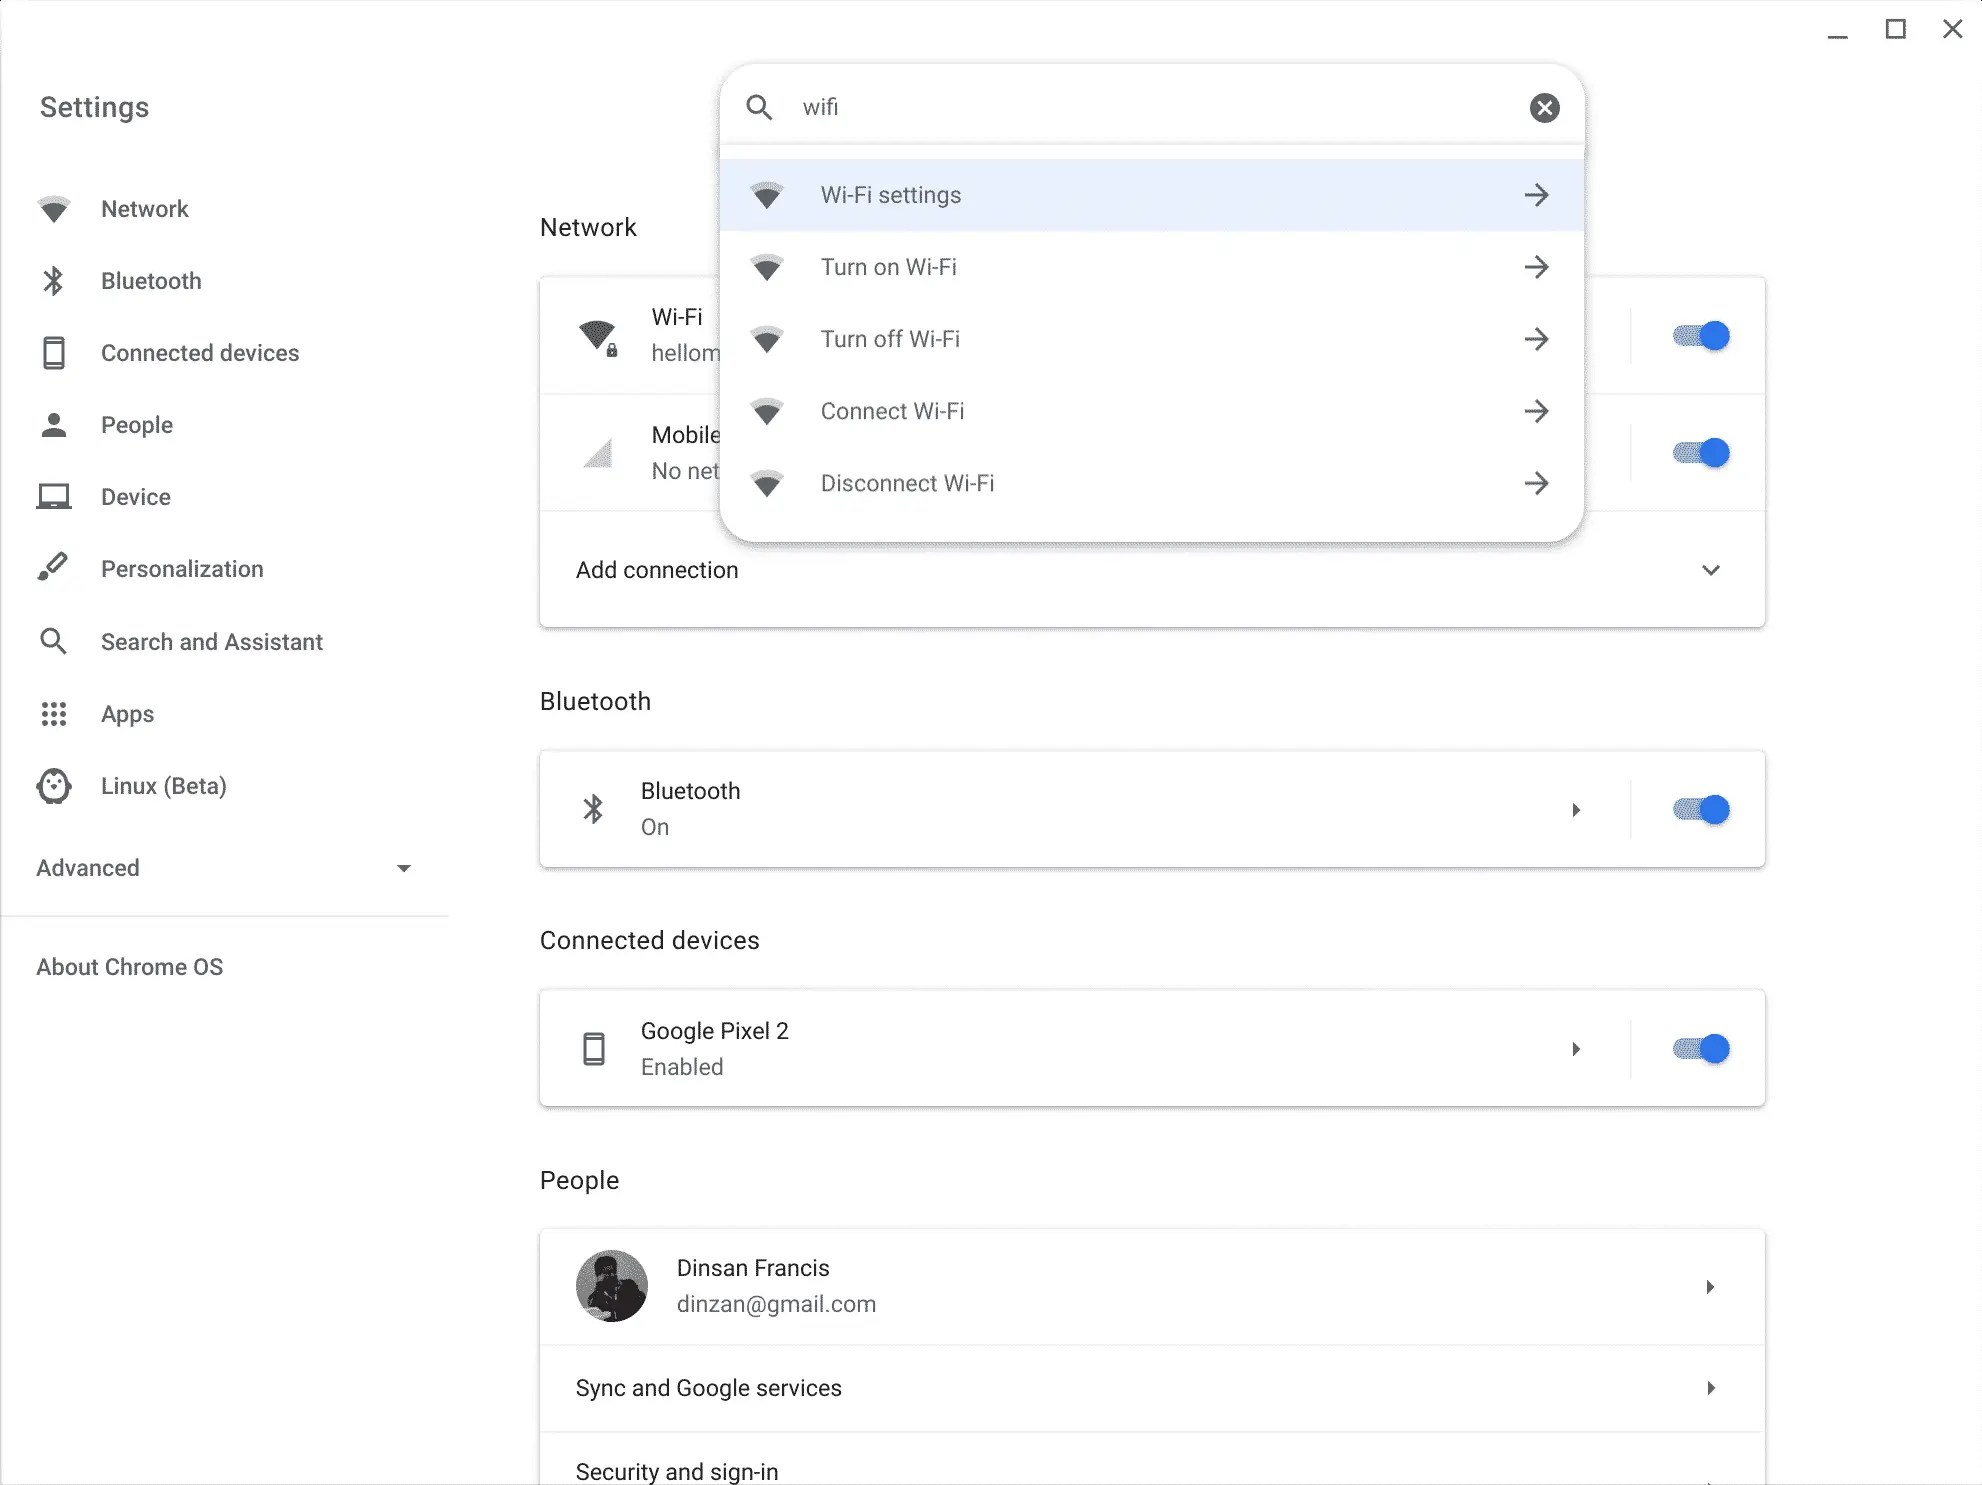 Chrome OS Settings Search - New